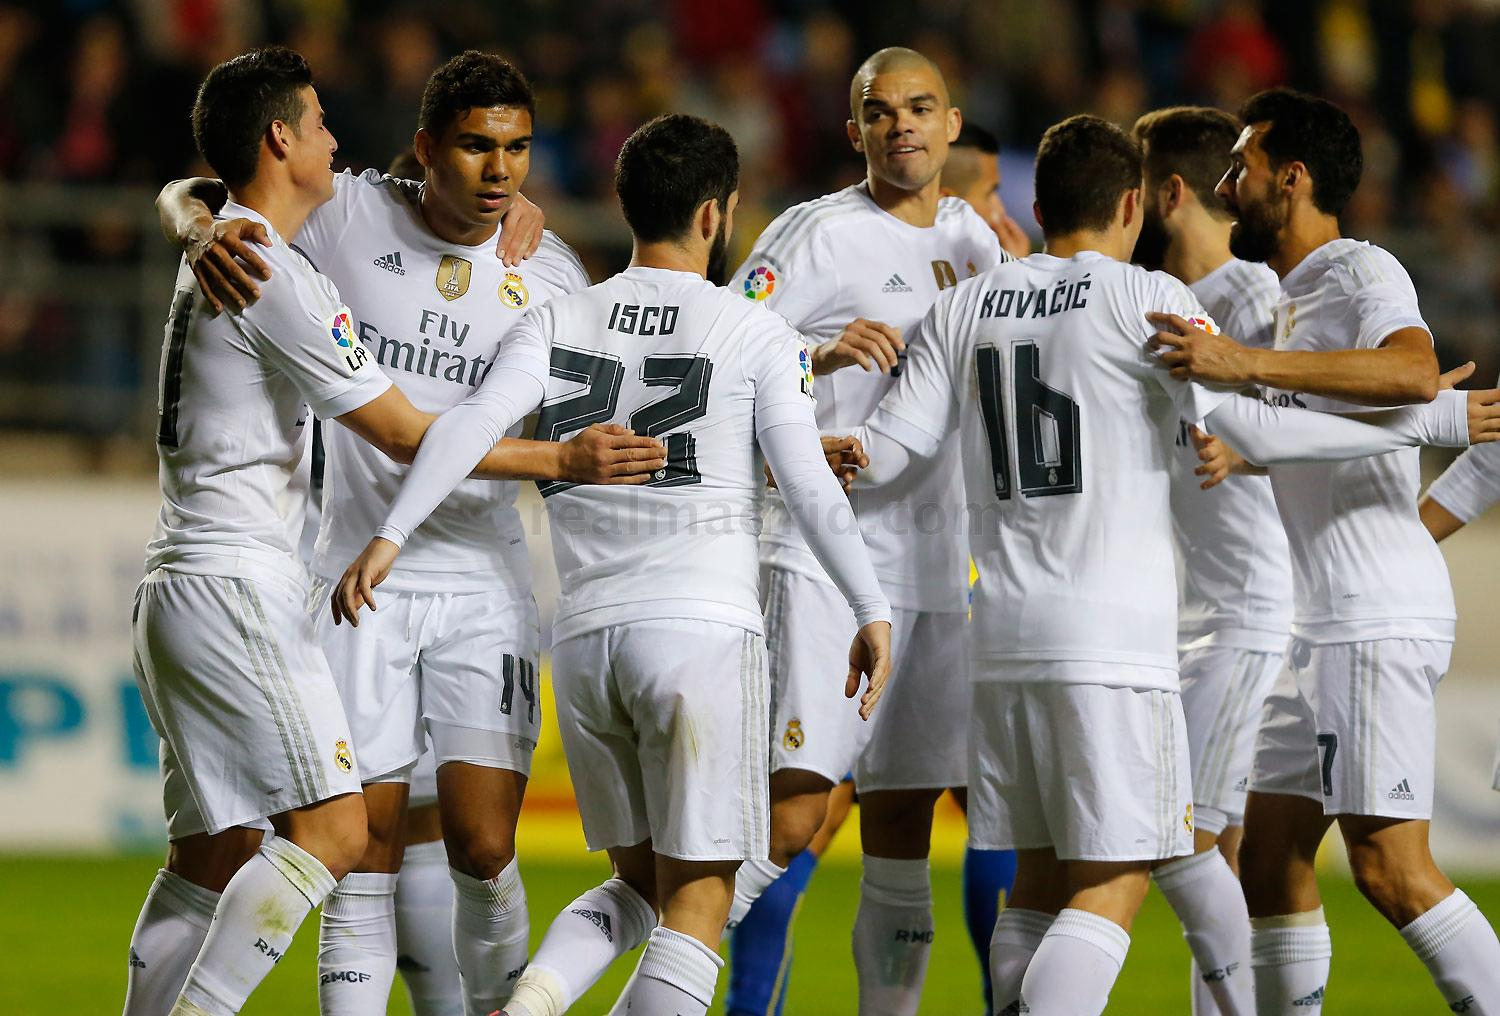 Real Madrid - Cádiz - Real Madrid - 02-12-2015